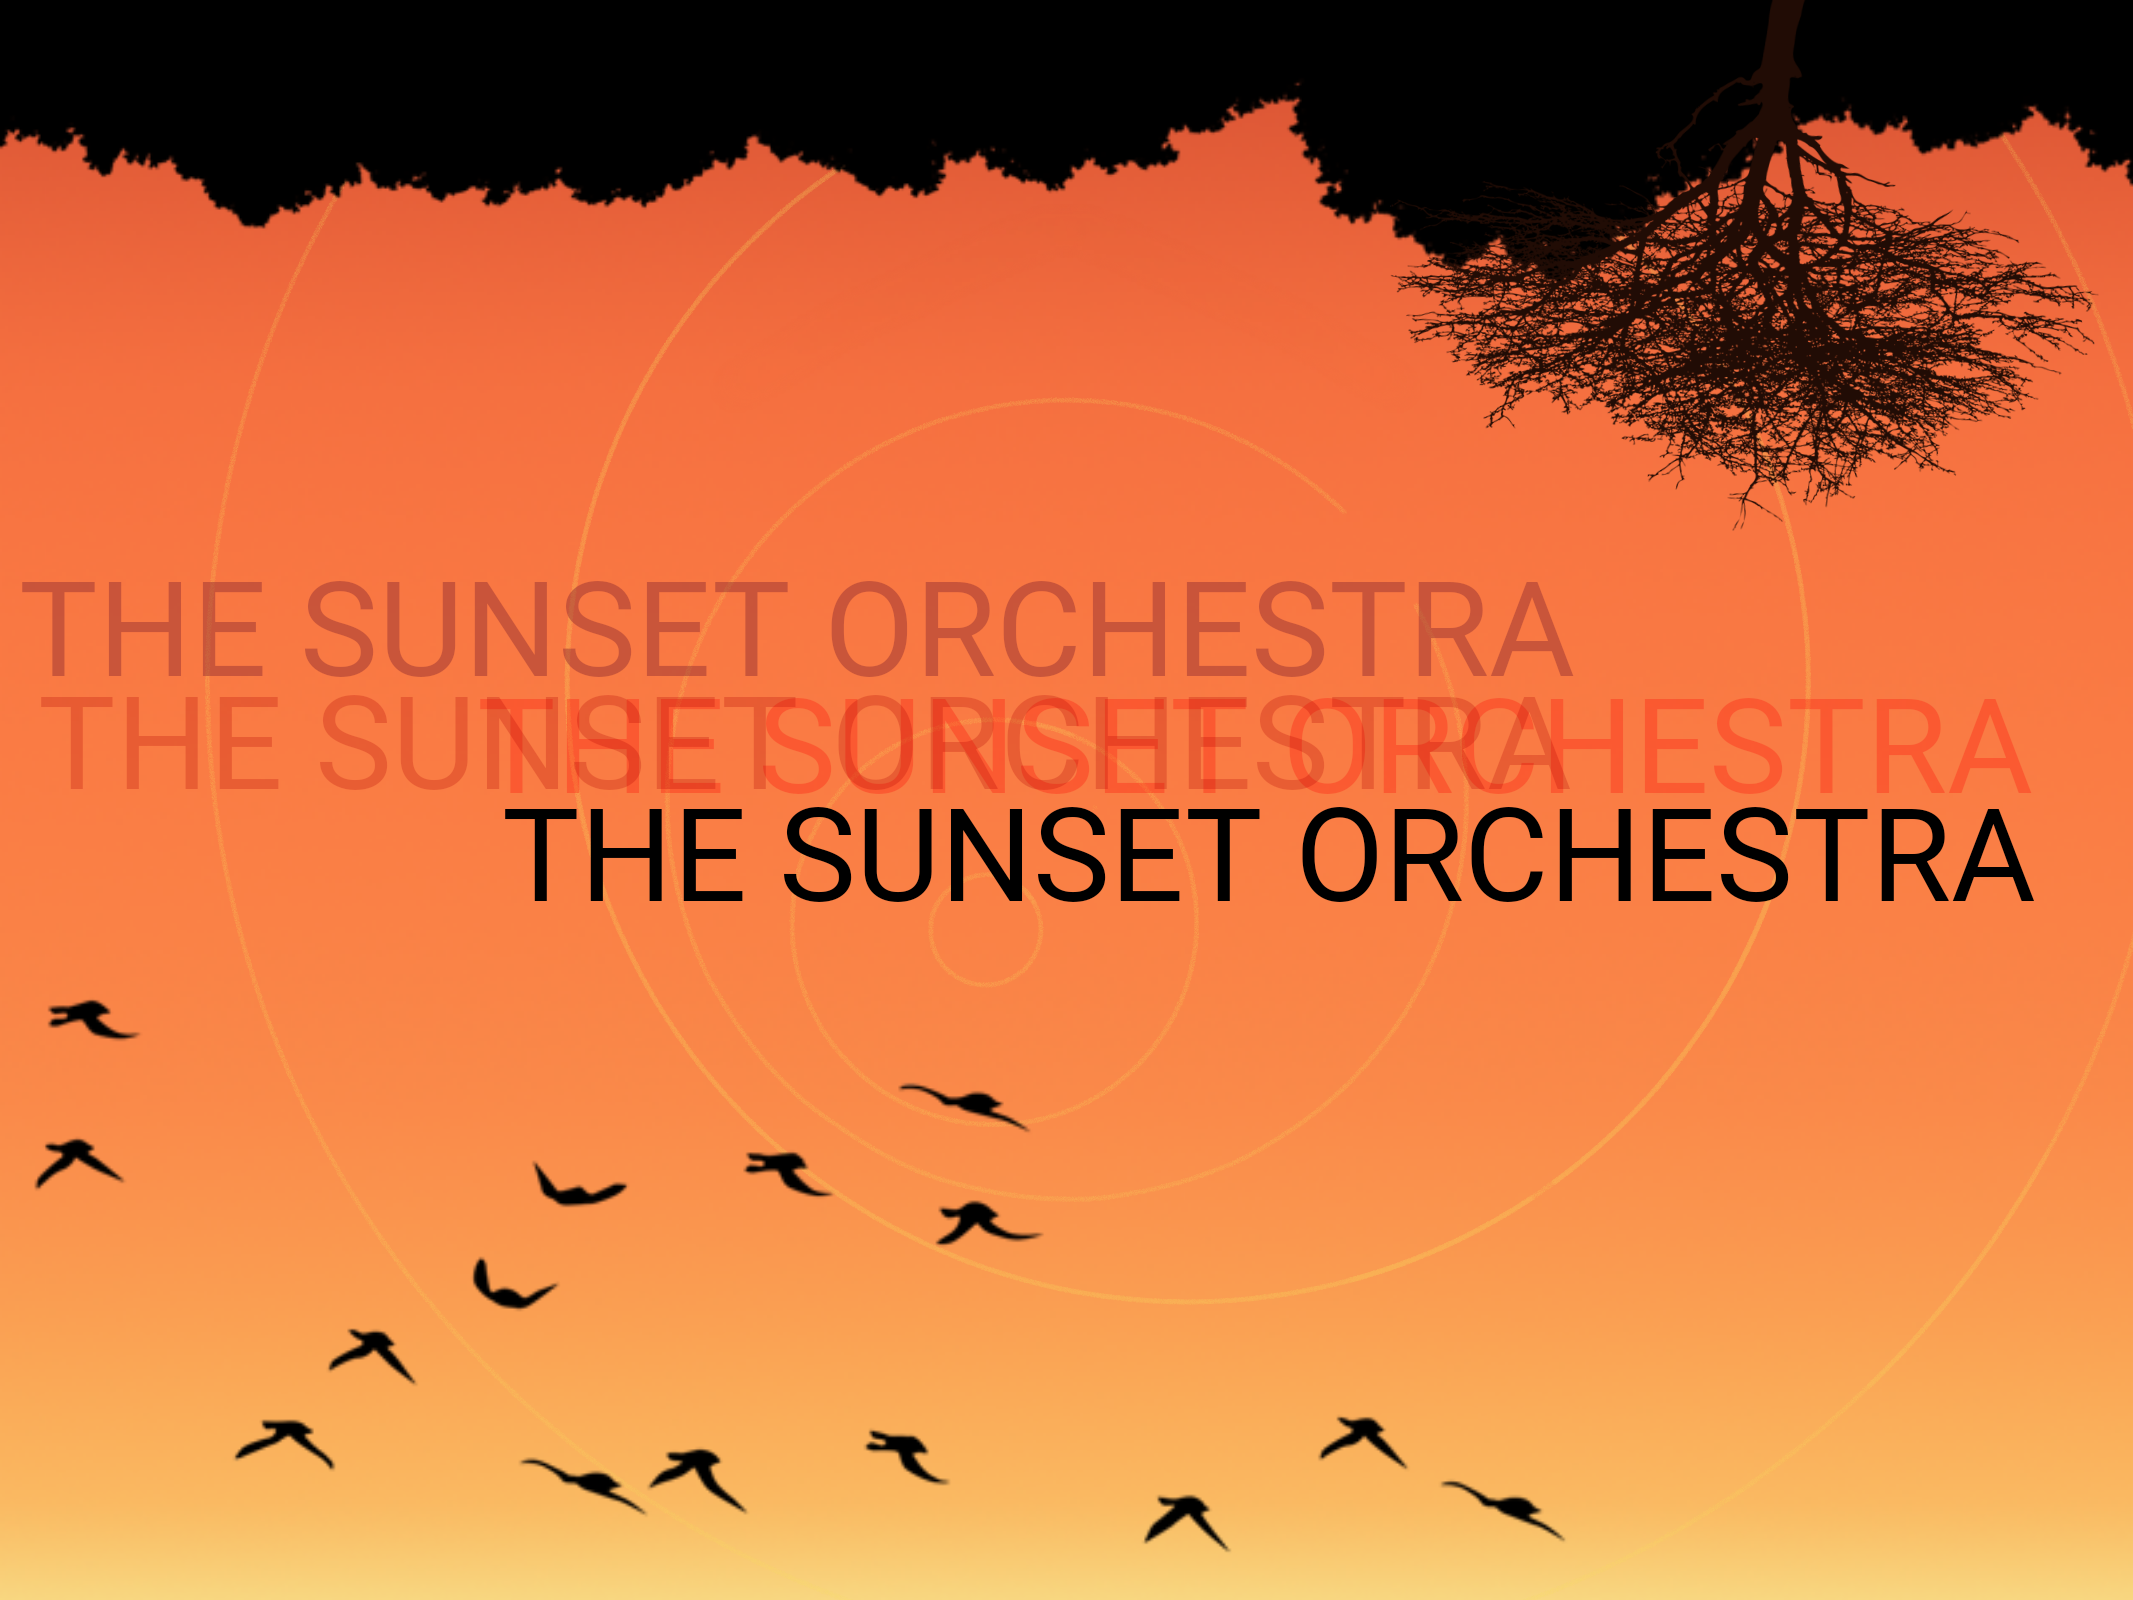 The Sunset Orchestra